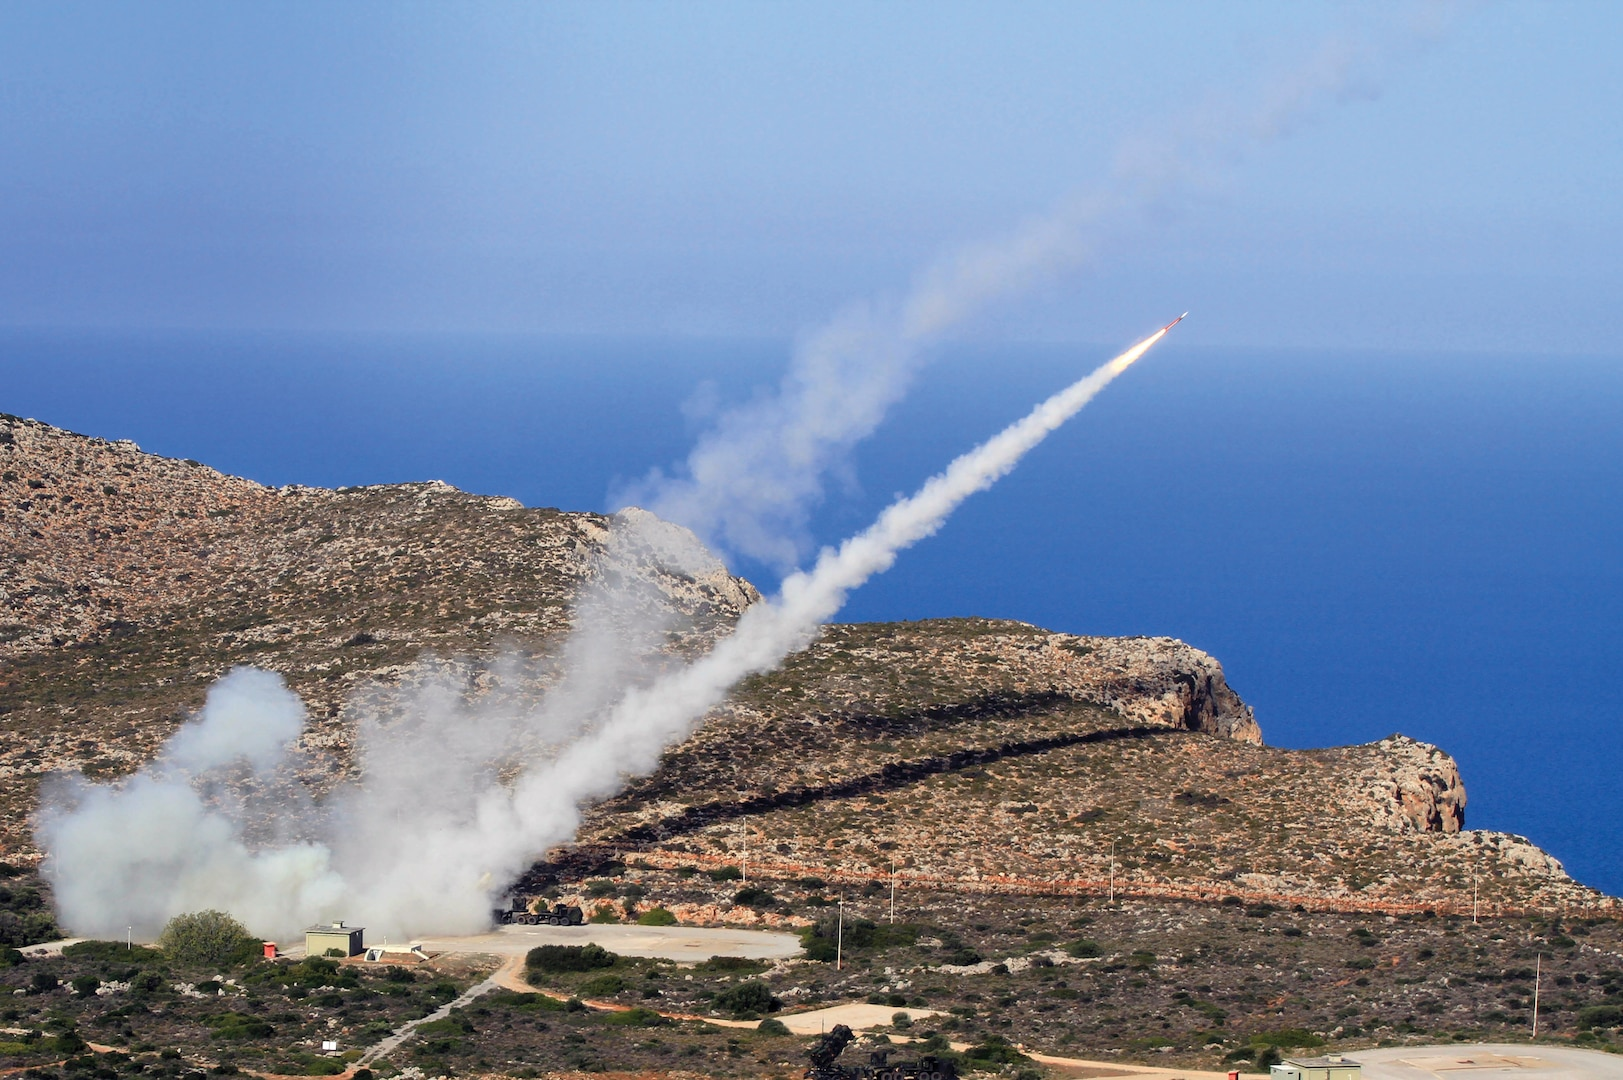 Soldiers from 7th Air Defense Artillery Regiment engage targets with Patriot missile systems at NATO Missile Firing Installation at Chania, Greece, during German-led multinational air defense exercise Artemis Strike, November 2017 (U.S. Army/Jason Epperson)